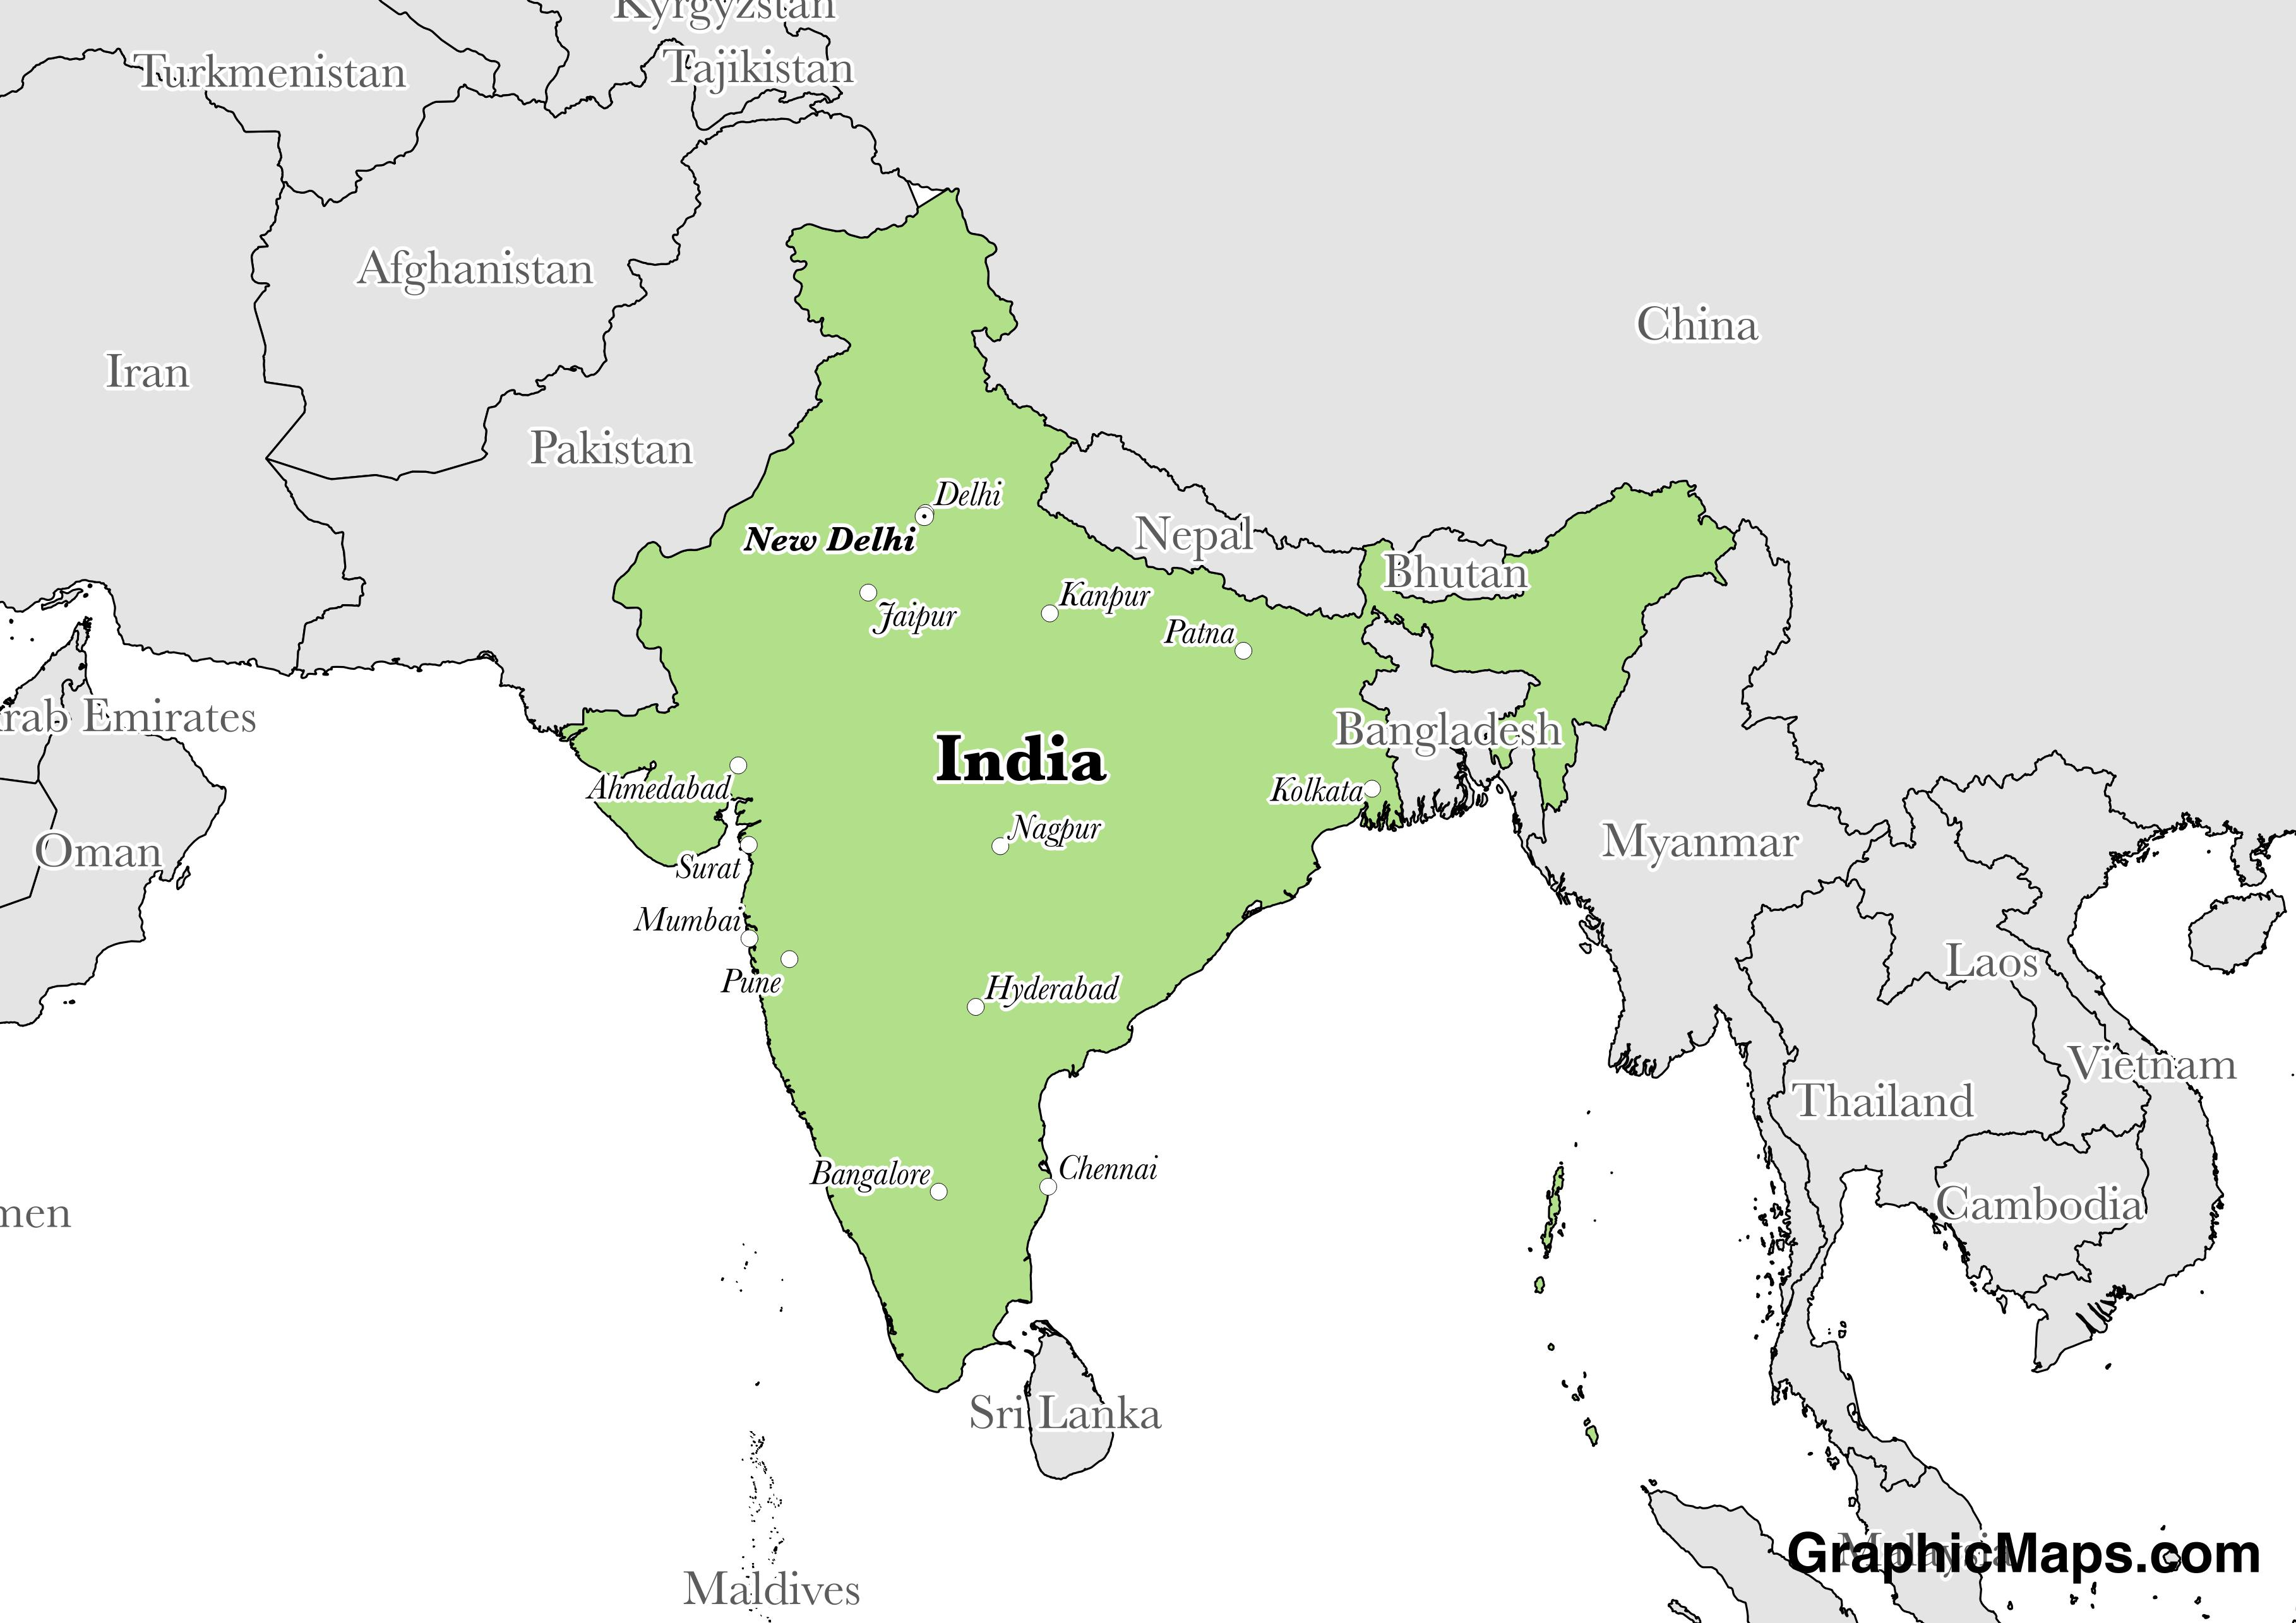 Map showing the location of India